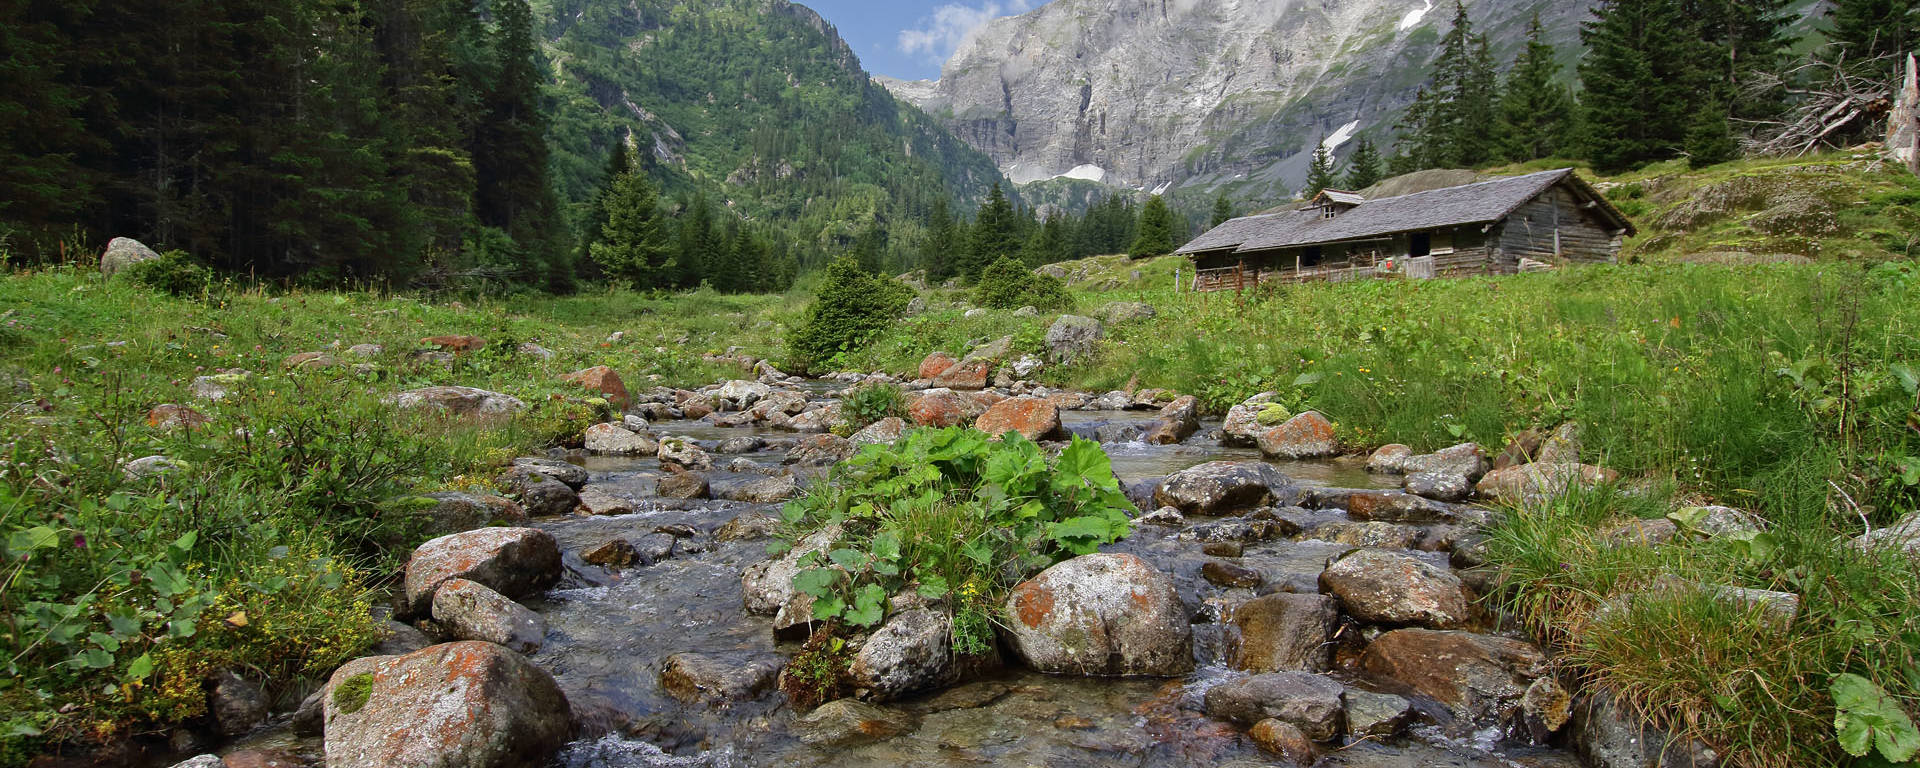 Hinteres Lauterbrunnental Copyright C. Roesti